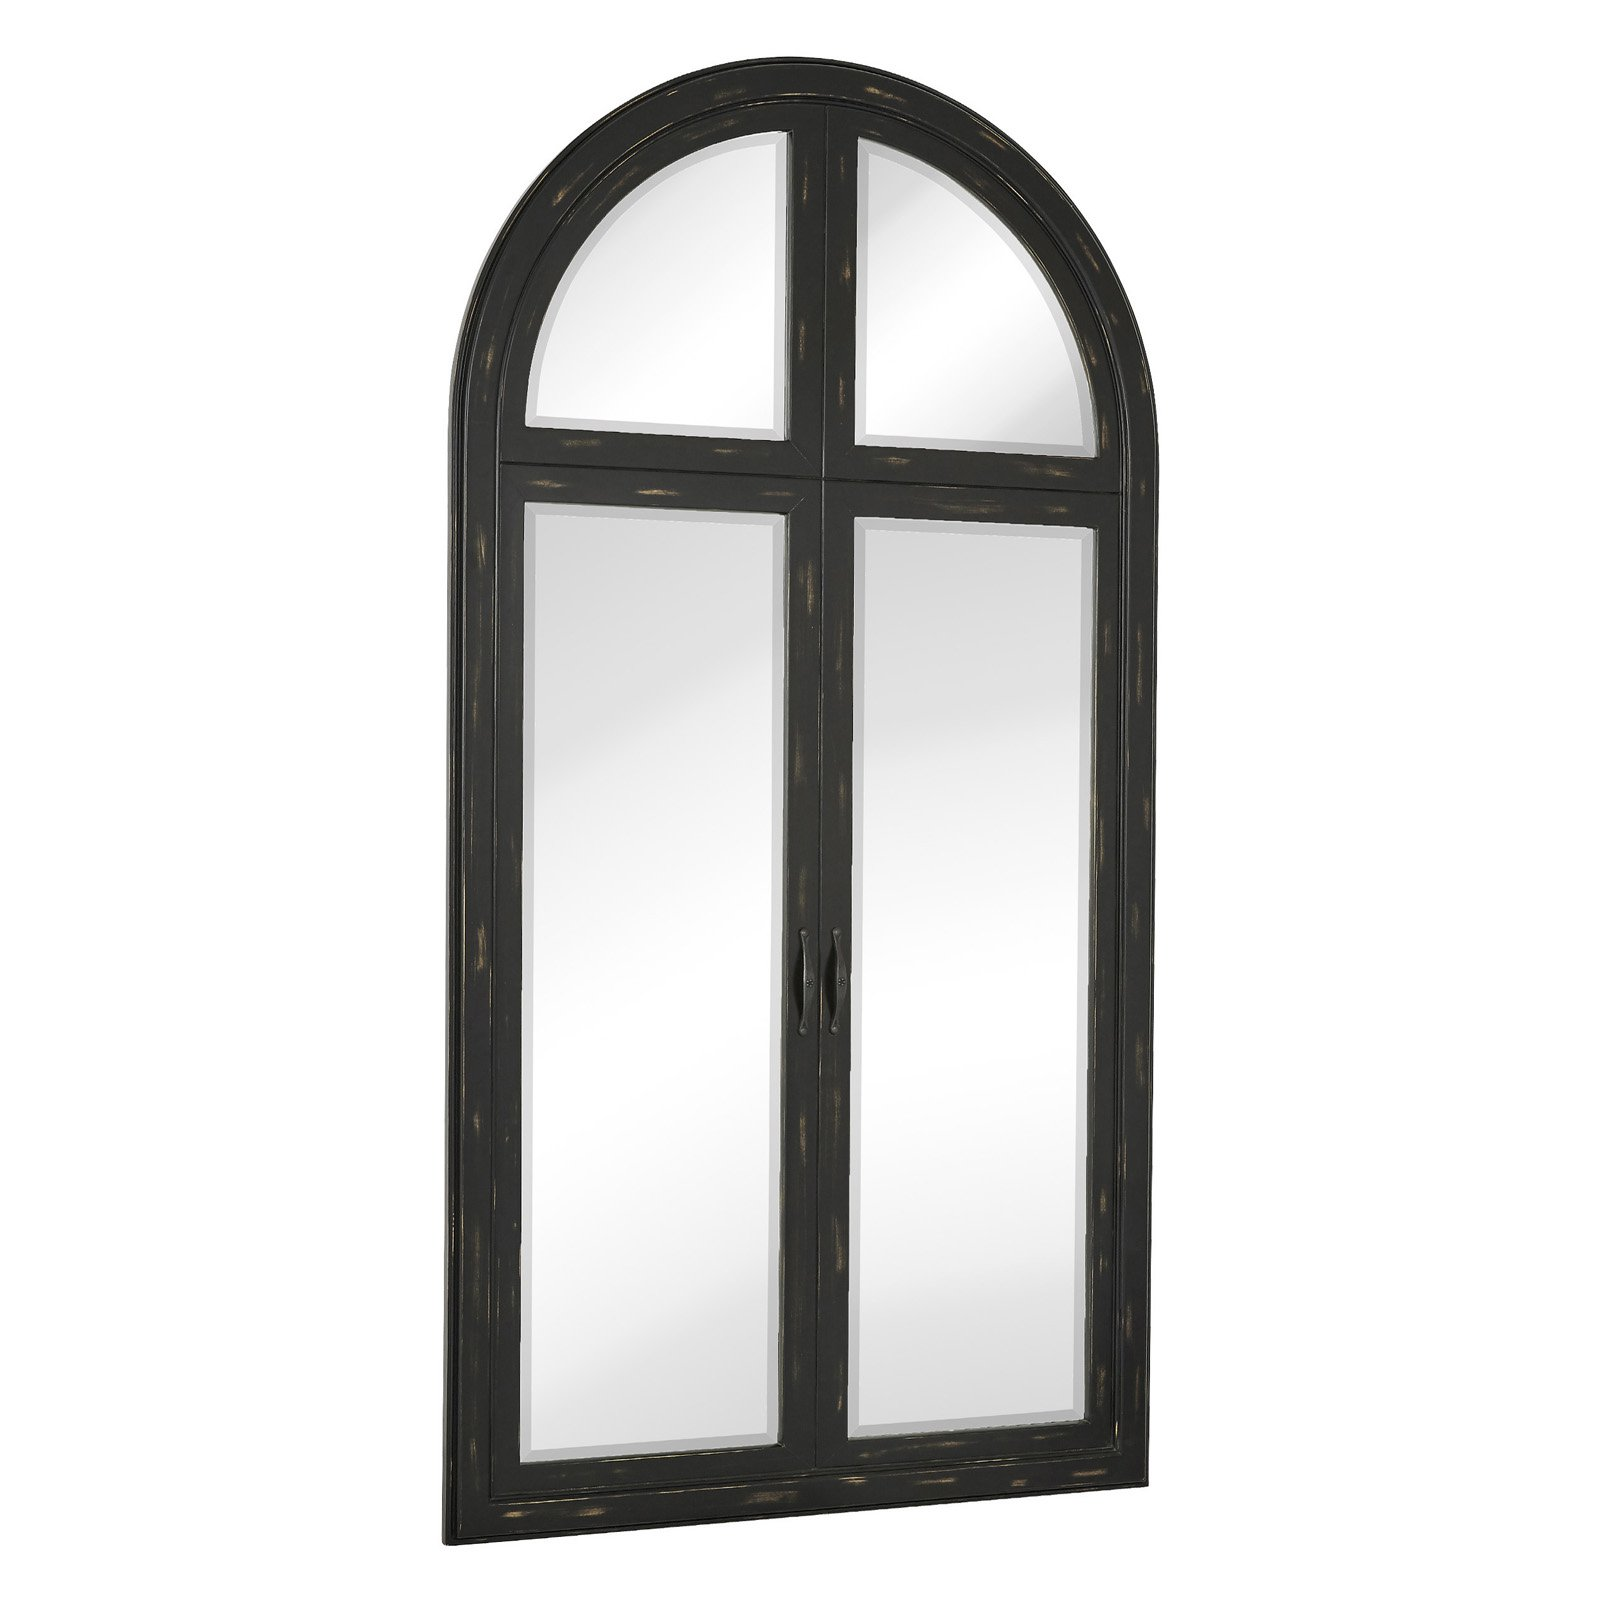 majestic beveled glass full length arched window pane wall mirror